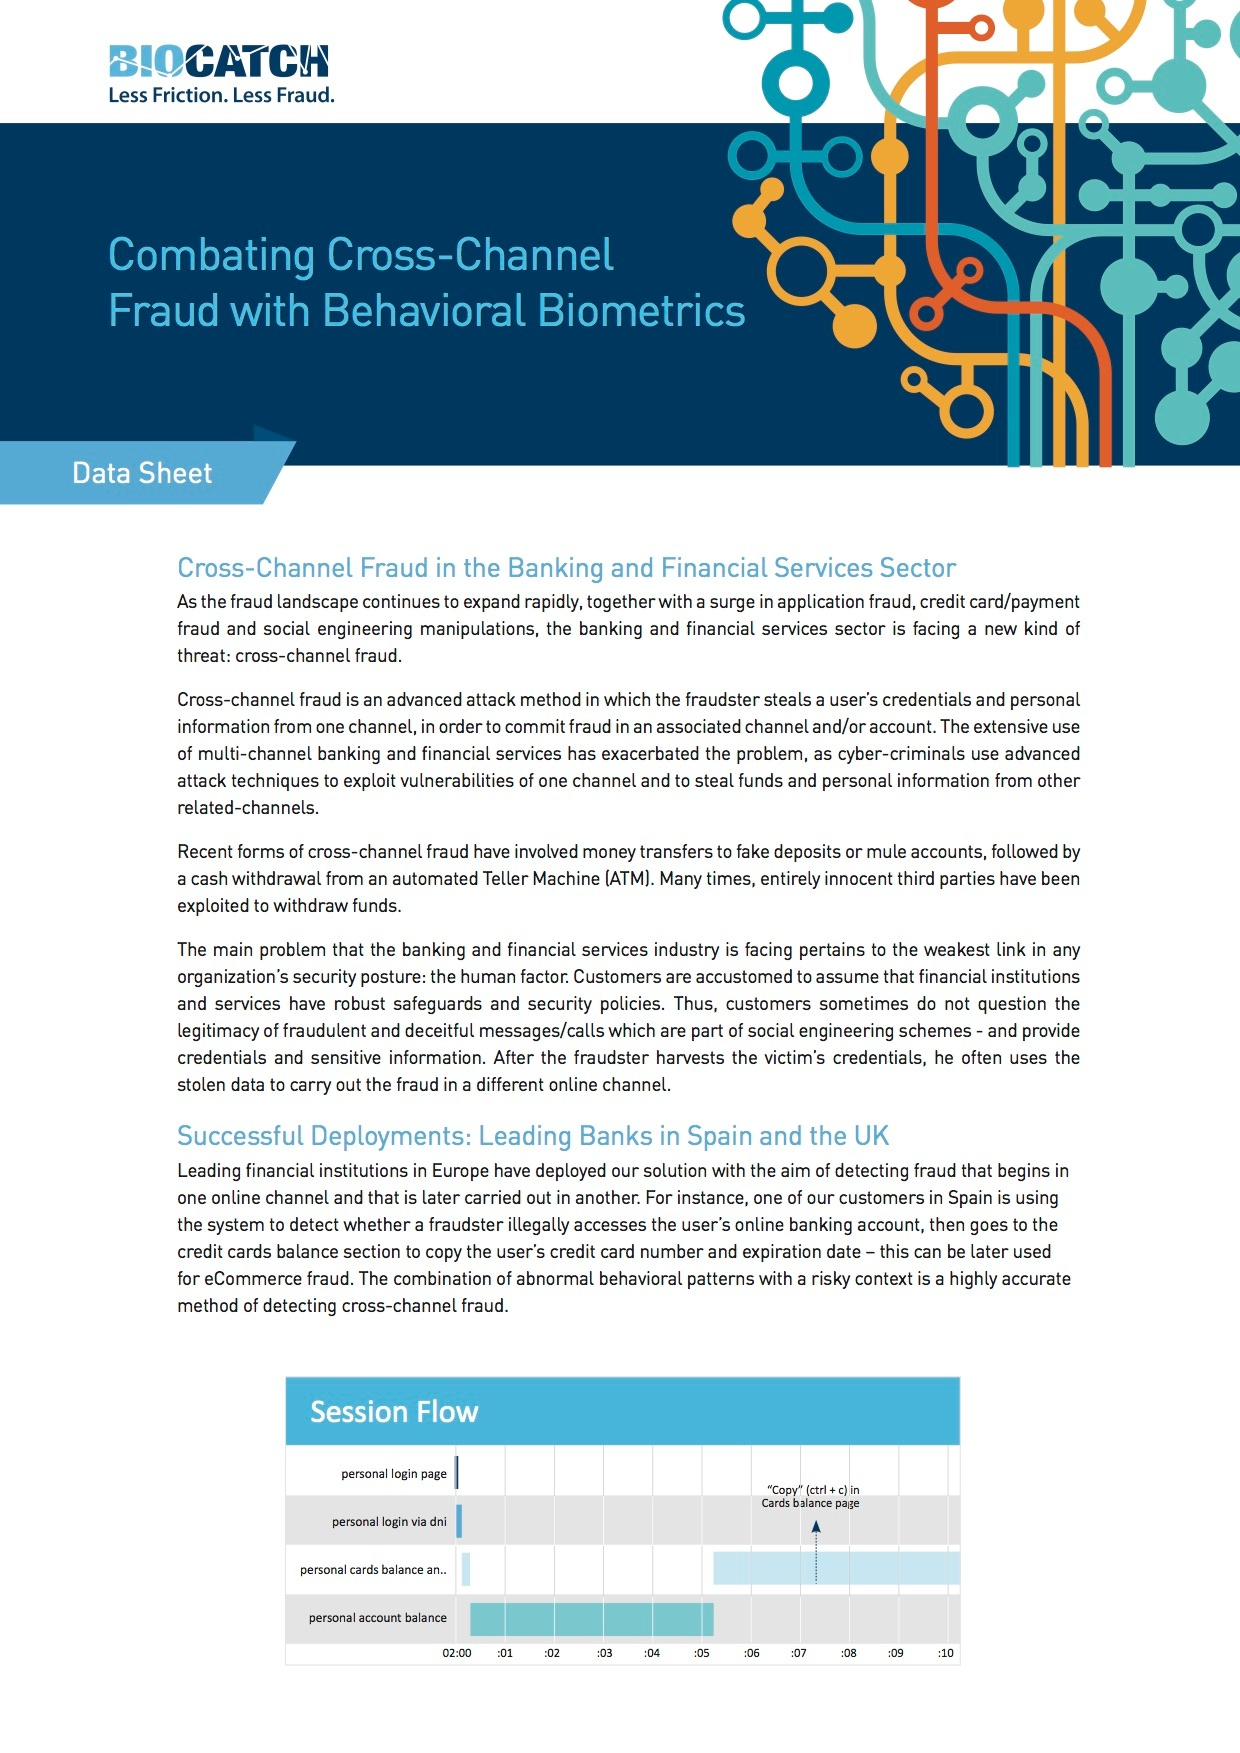 Cross-Channel Fraud Data Sheet.jpg